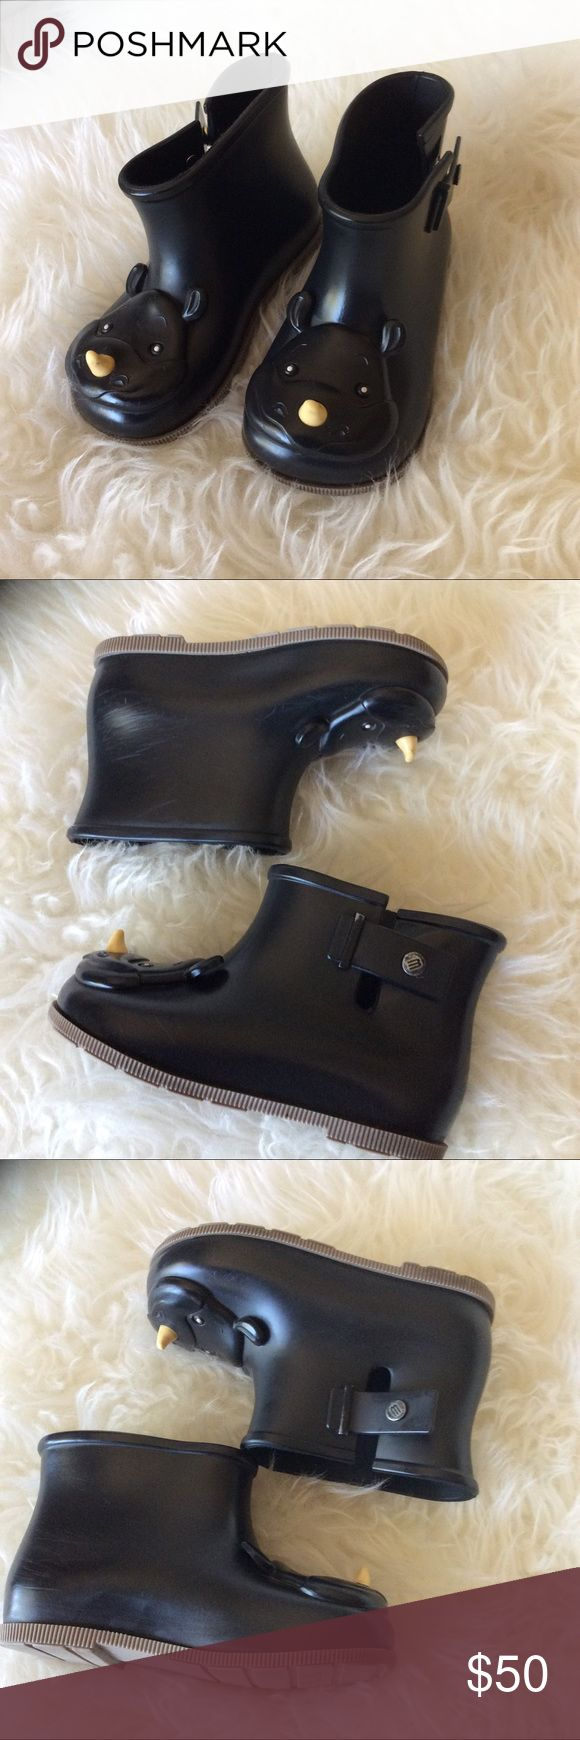 Girls size 10 mini Melissa rhino rain boots GUC mini Melissa htf rhino rain boots black. Size 10 girls rubber boots. Mini Melissa Shoes Rain & Snow Boots